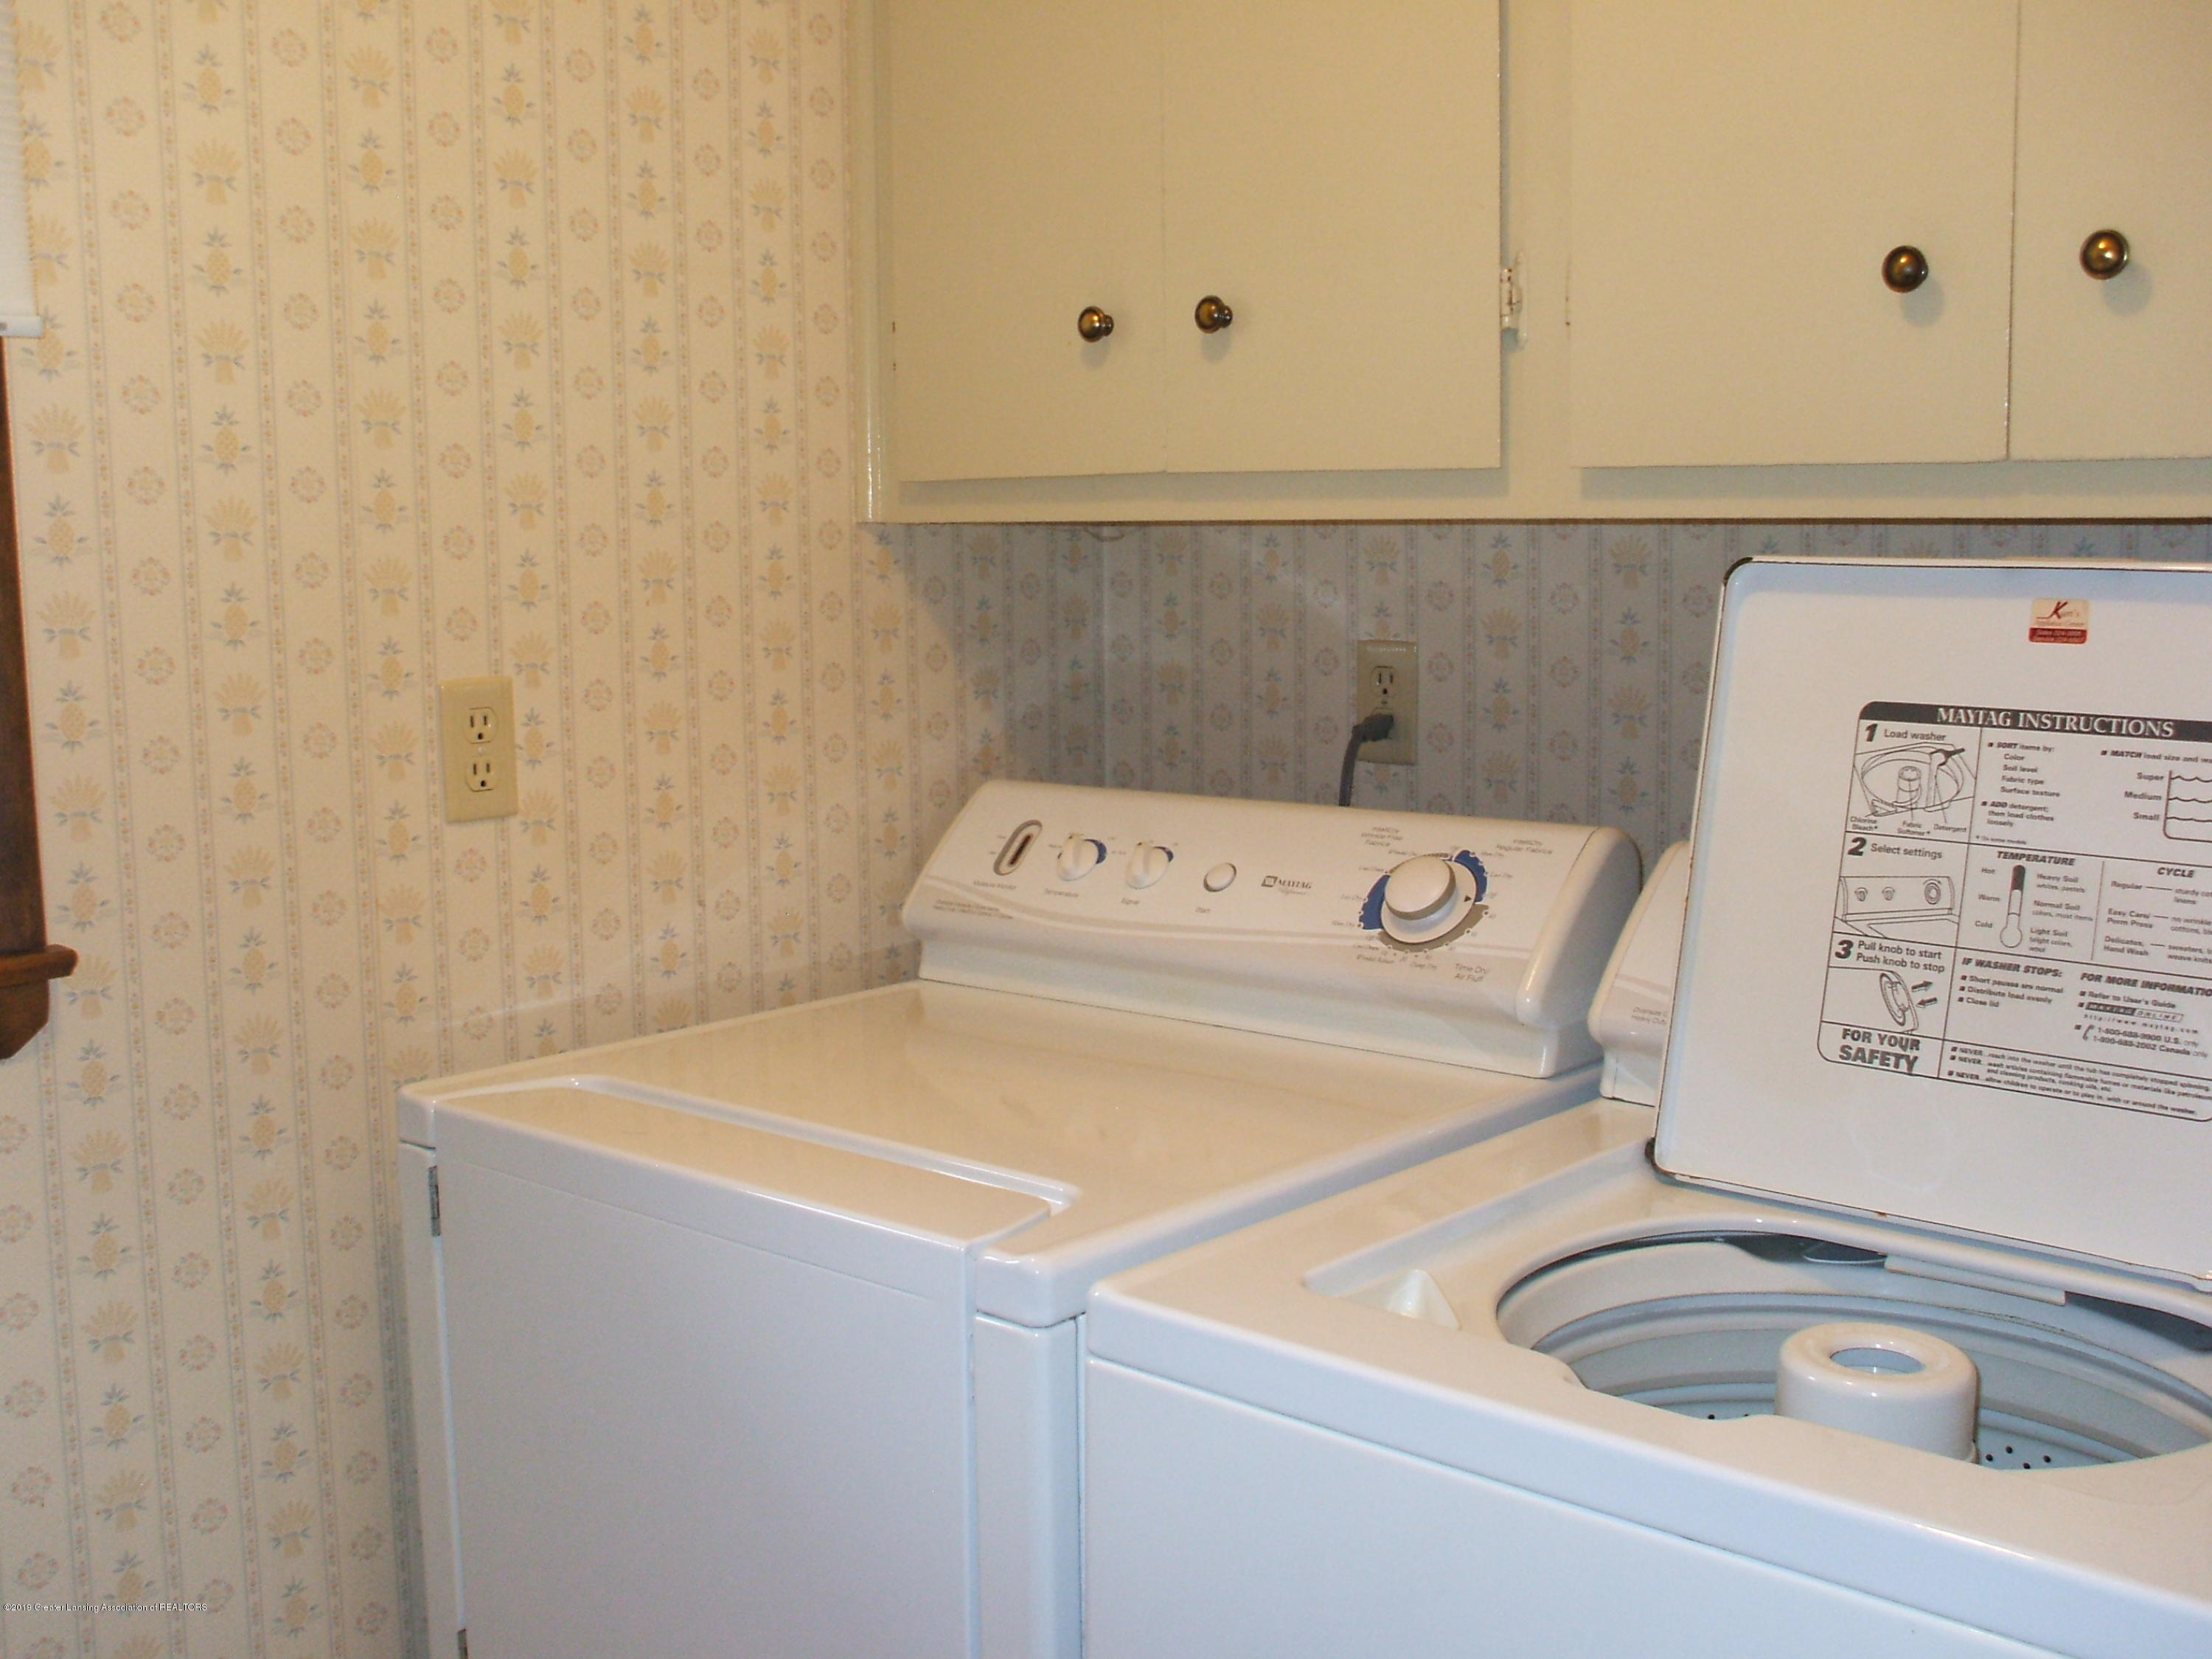 803 W McConnell St - Laundry - 12